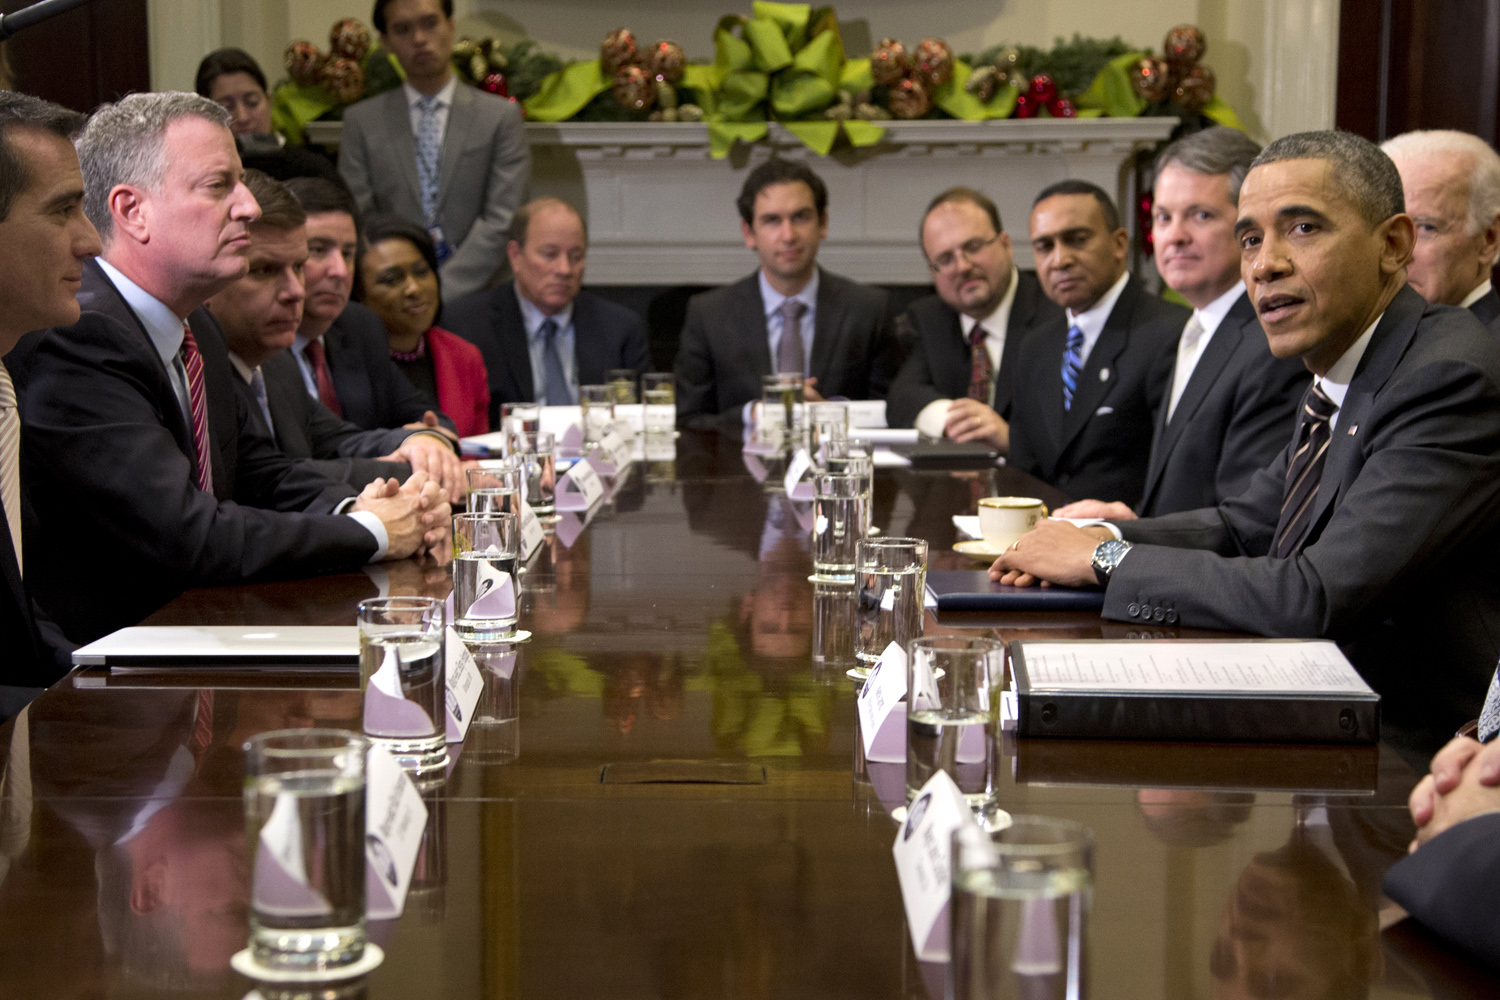 President Obama at a December 2013 meeting with US municipal mayors, including Bill De Blasio, discussing income equality. Photo by AP Photo/Carolyn Kaster.